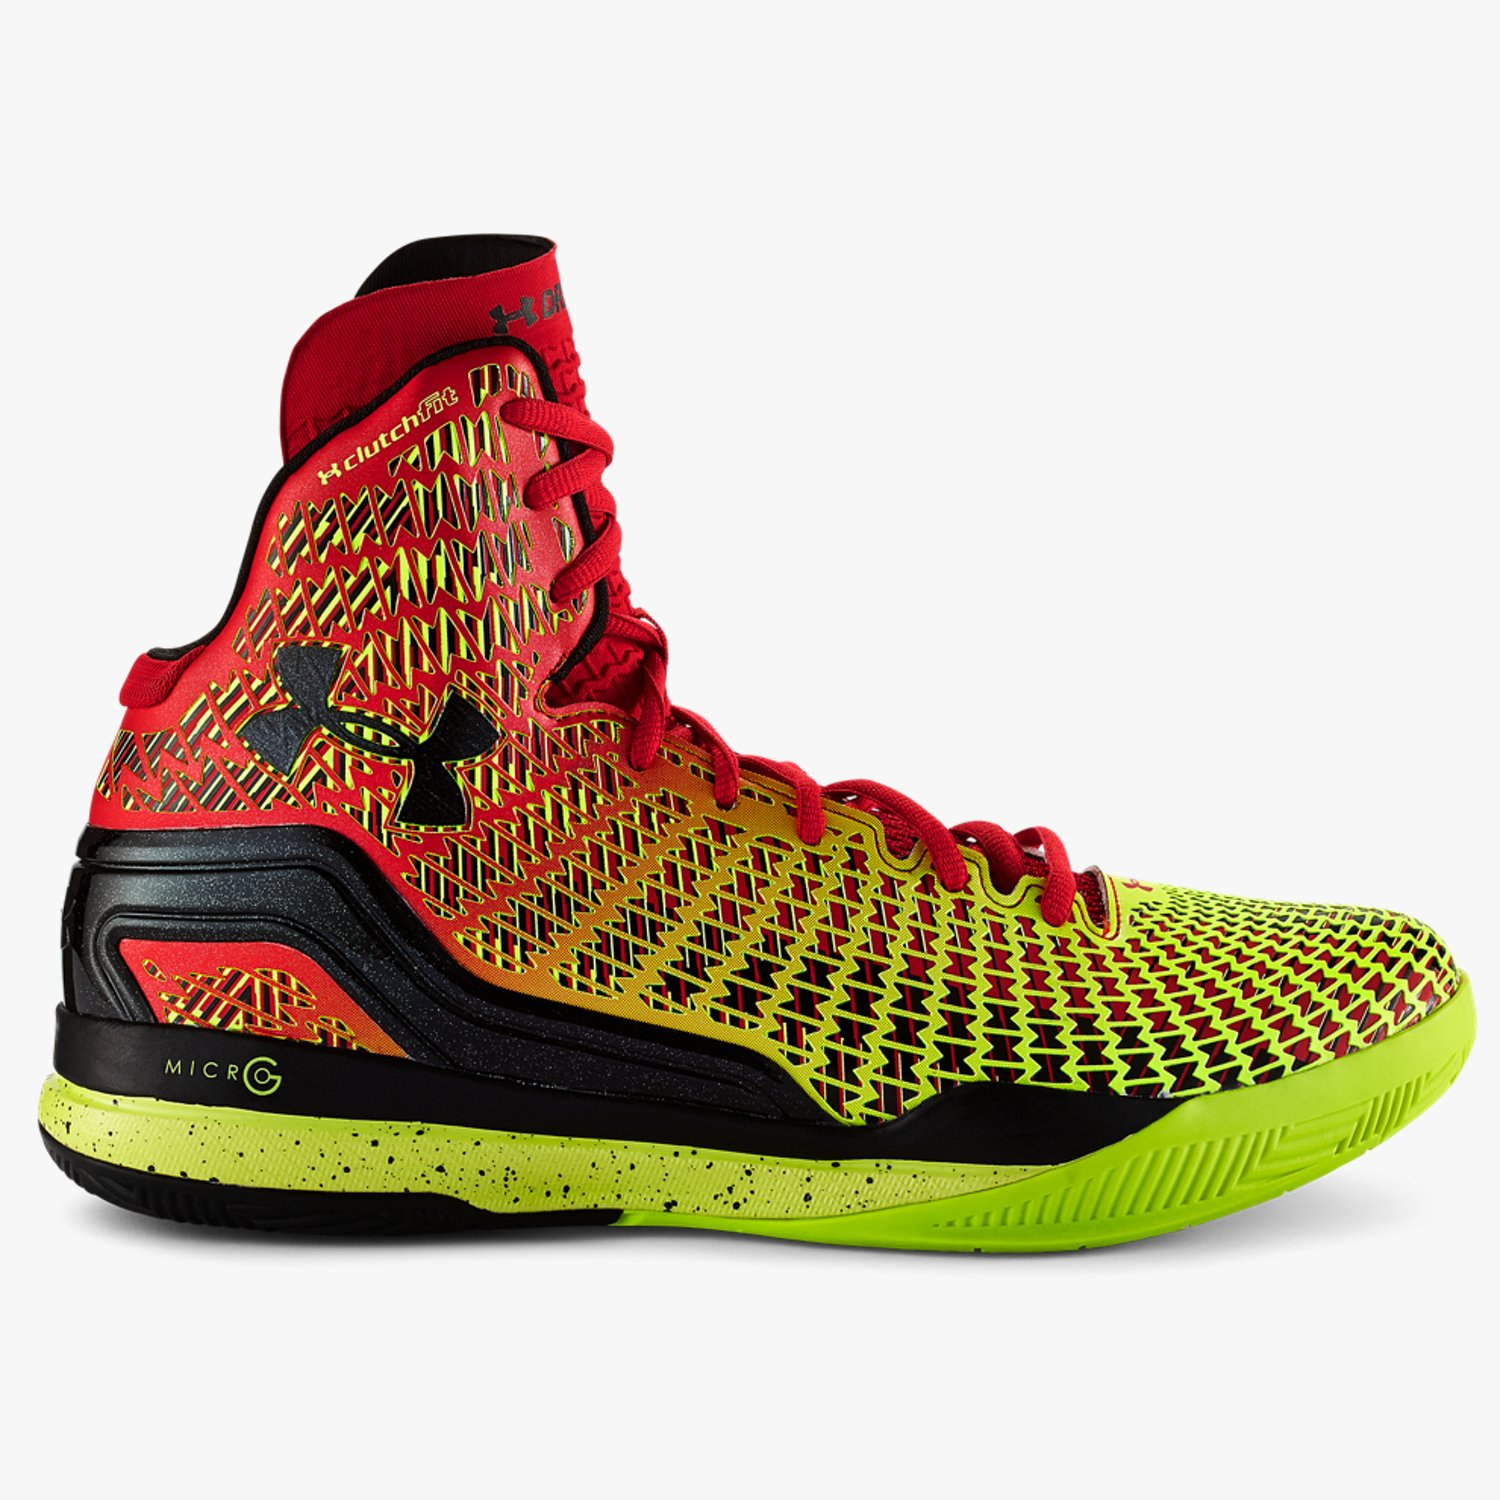 Under Armour UA ClutchFit Drive Mid Basketball Shoes Red/High-Vis Yellow/Black-30